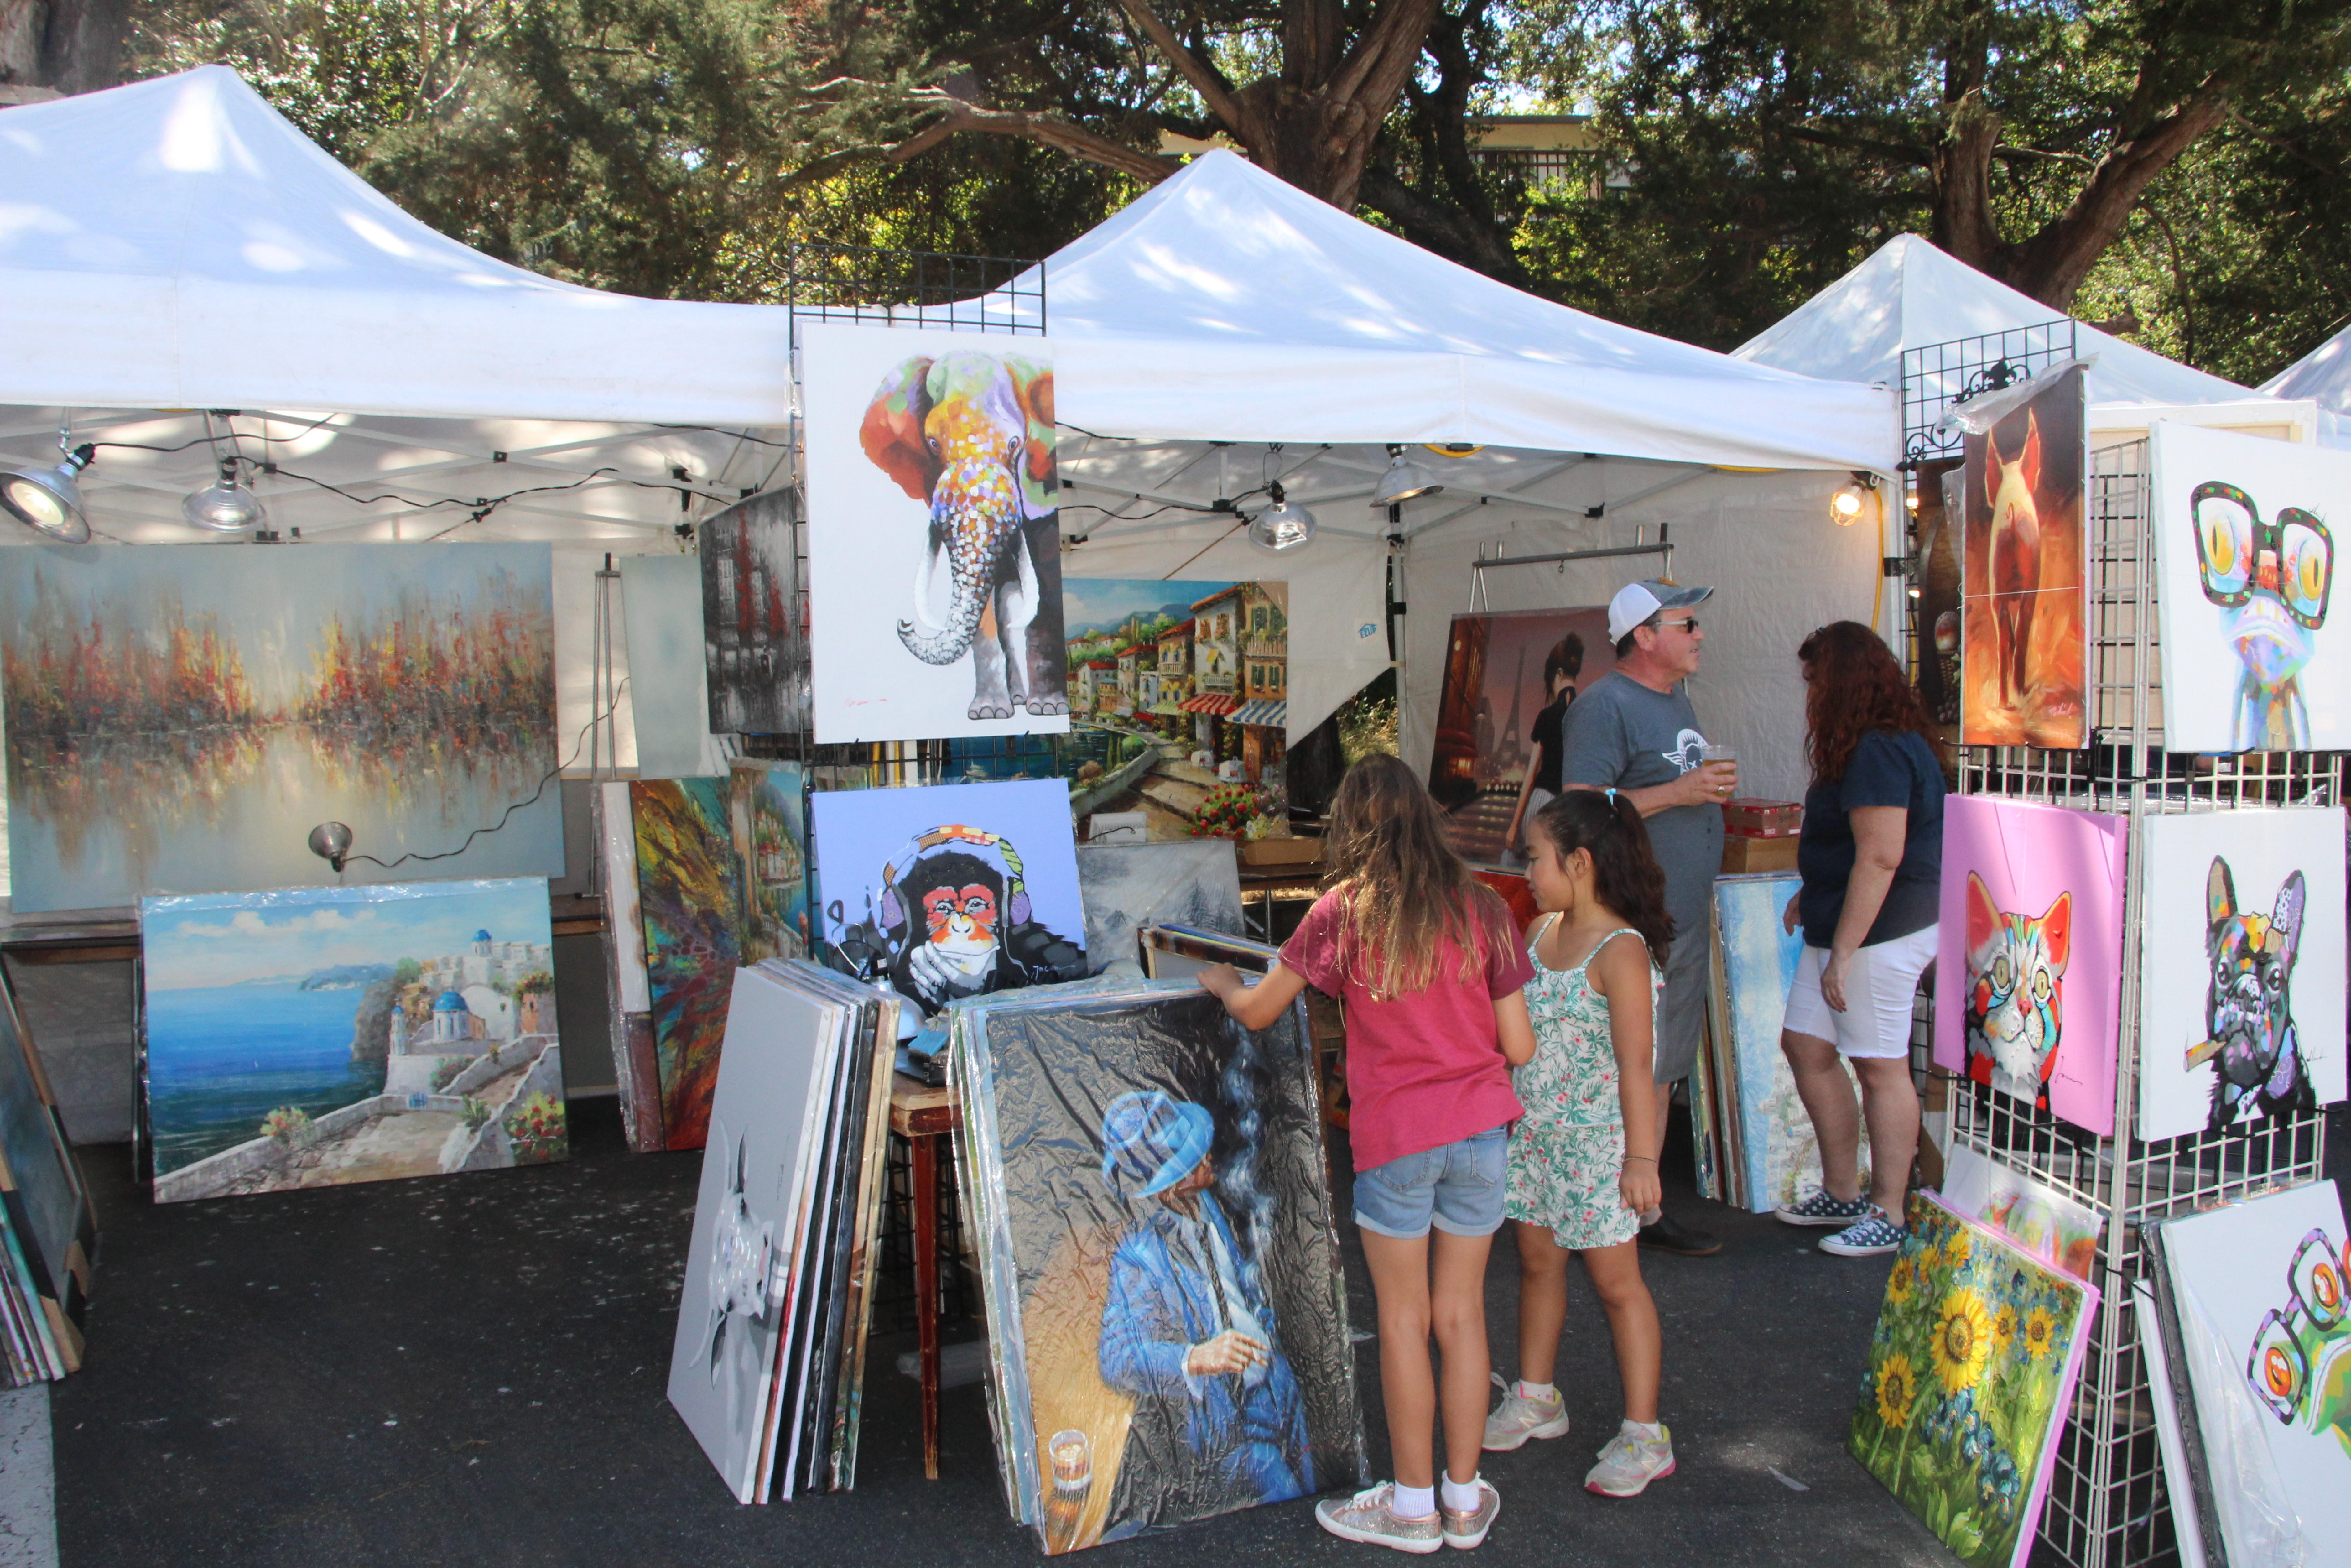 Children+and+adults+alike+admire+the+paintings+in+one+of+the+tents.